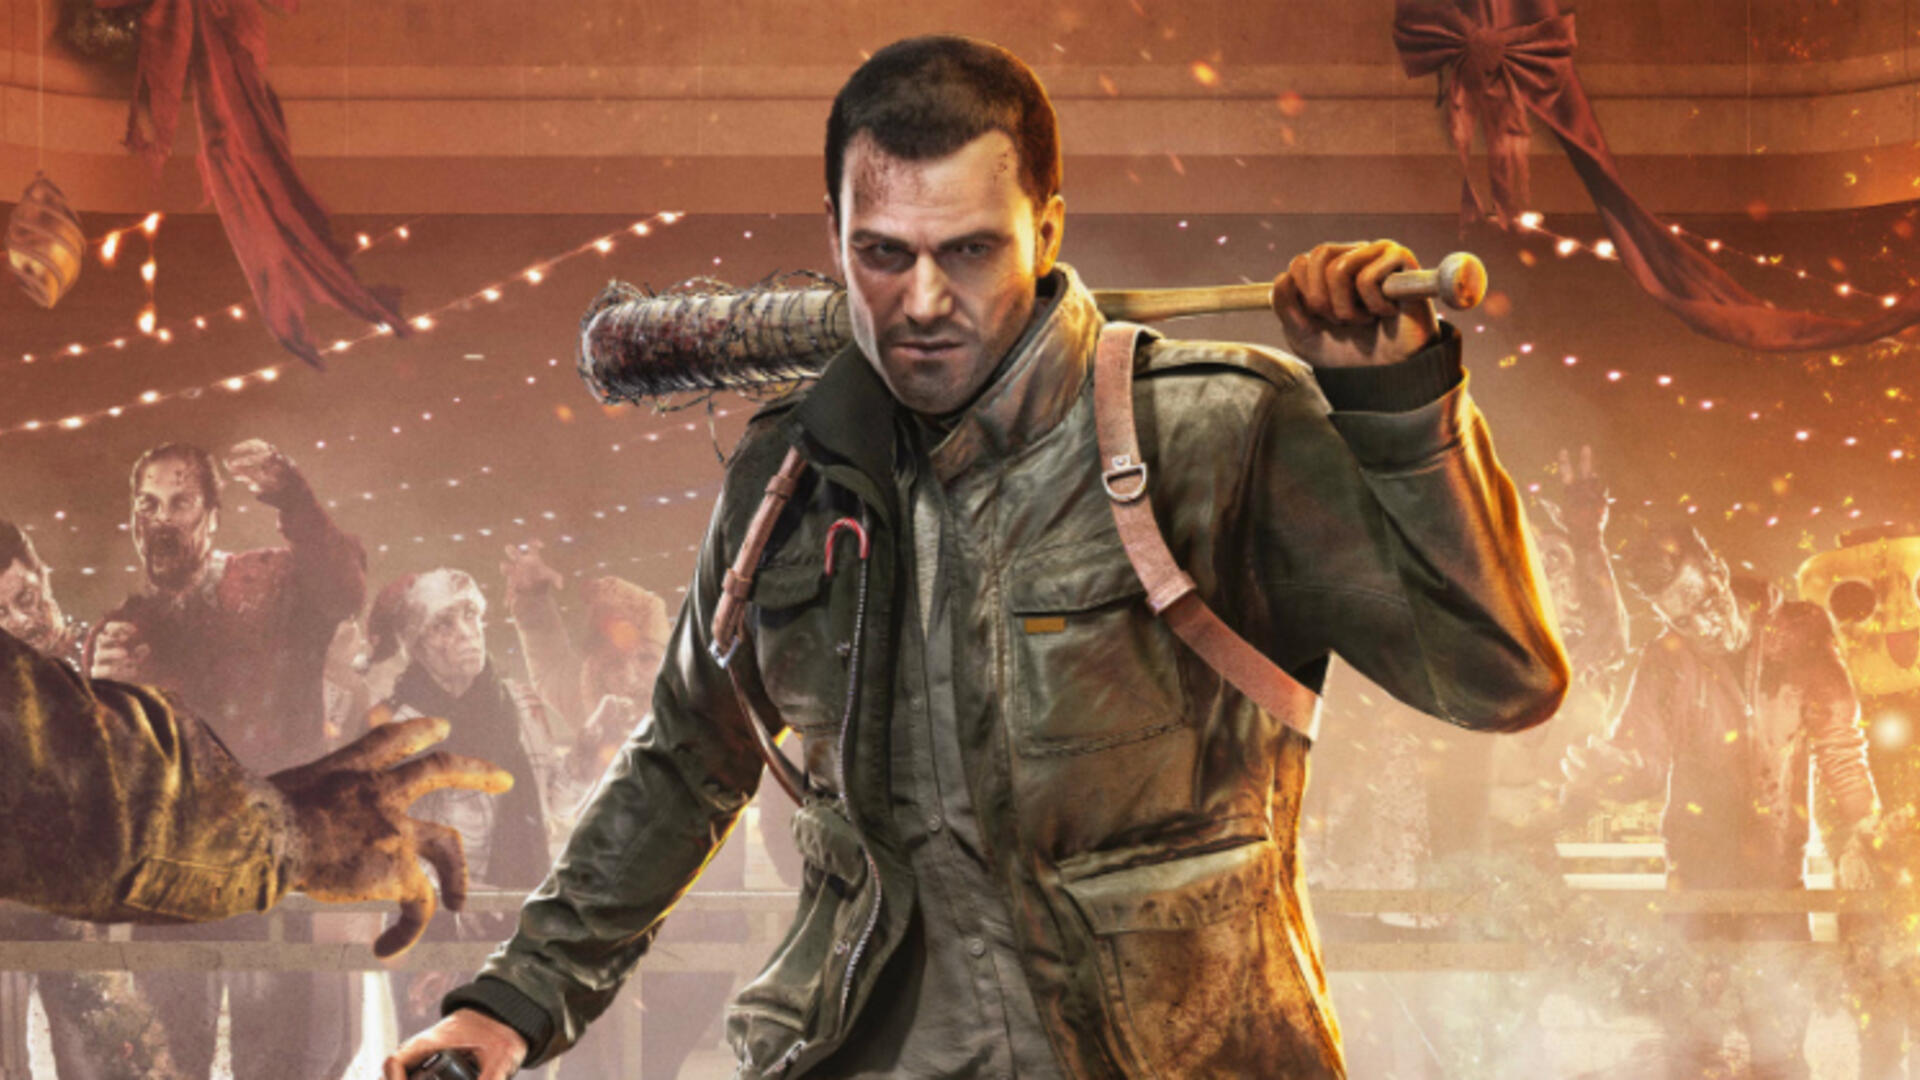 Dead Rising 4 Xbox One Review: Making Sure The Original Stays Dead